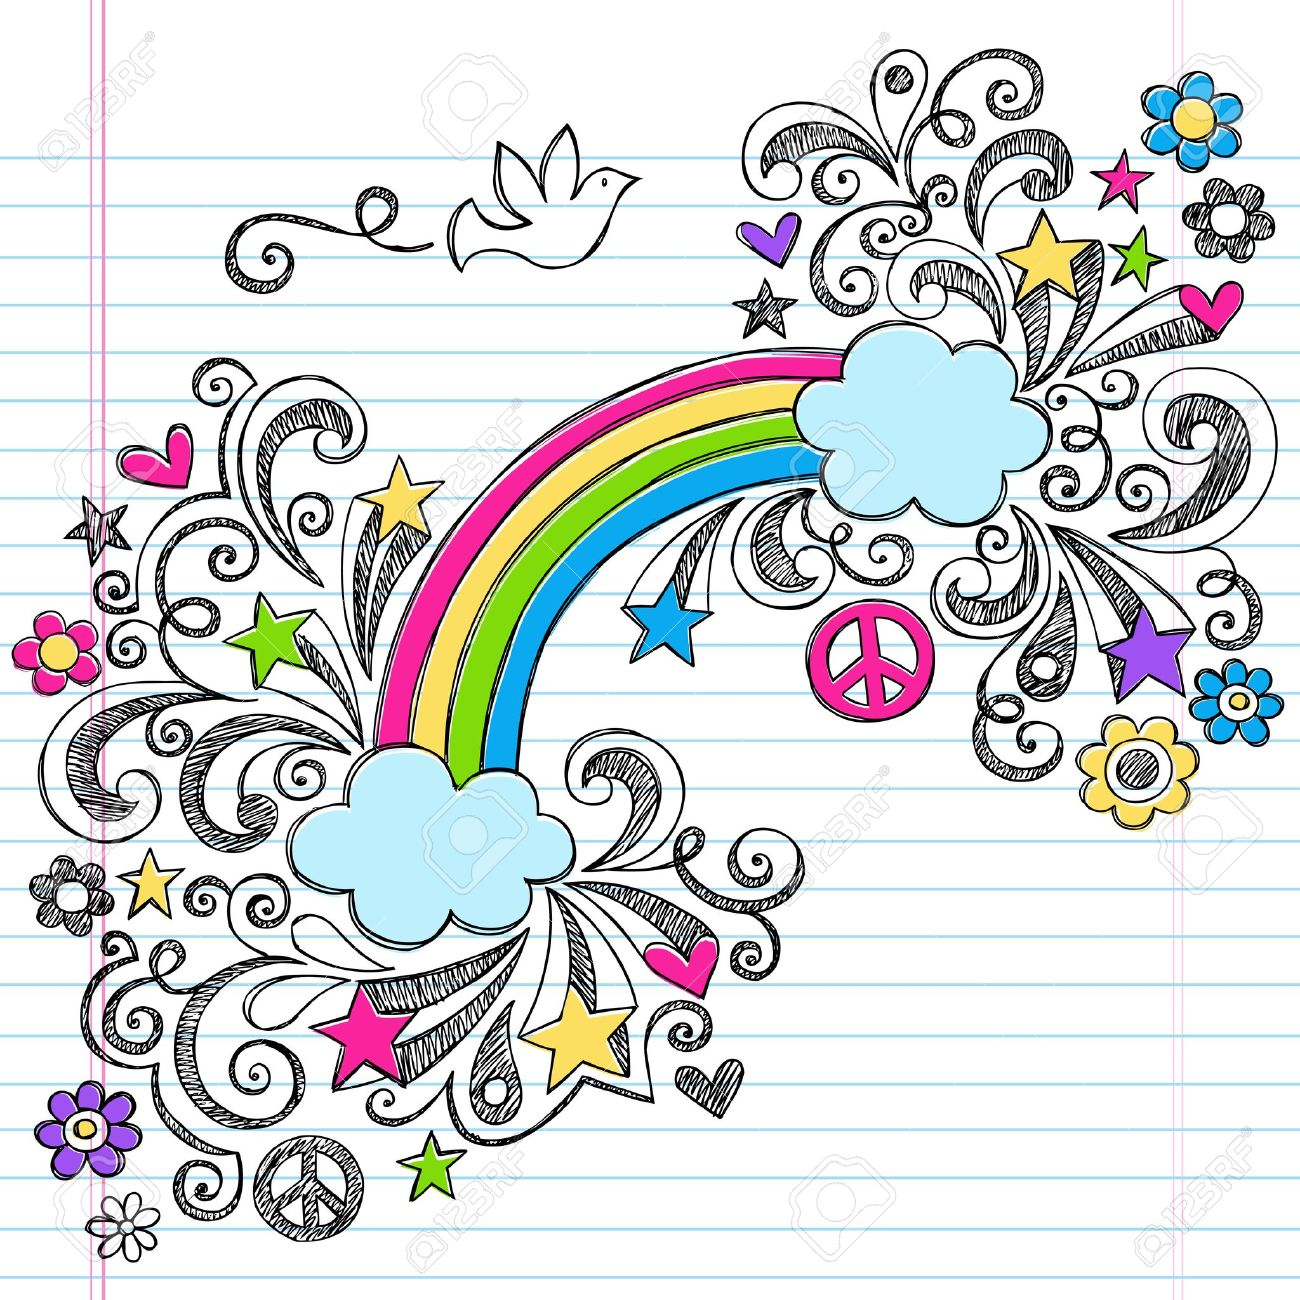 Cute Easy Drawings Cute Easy Designs to Draw on